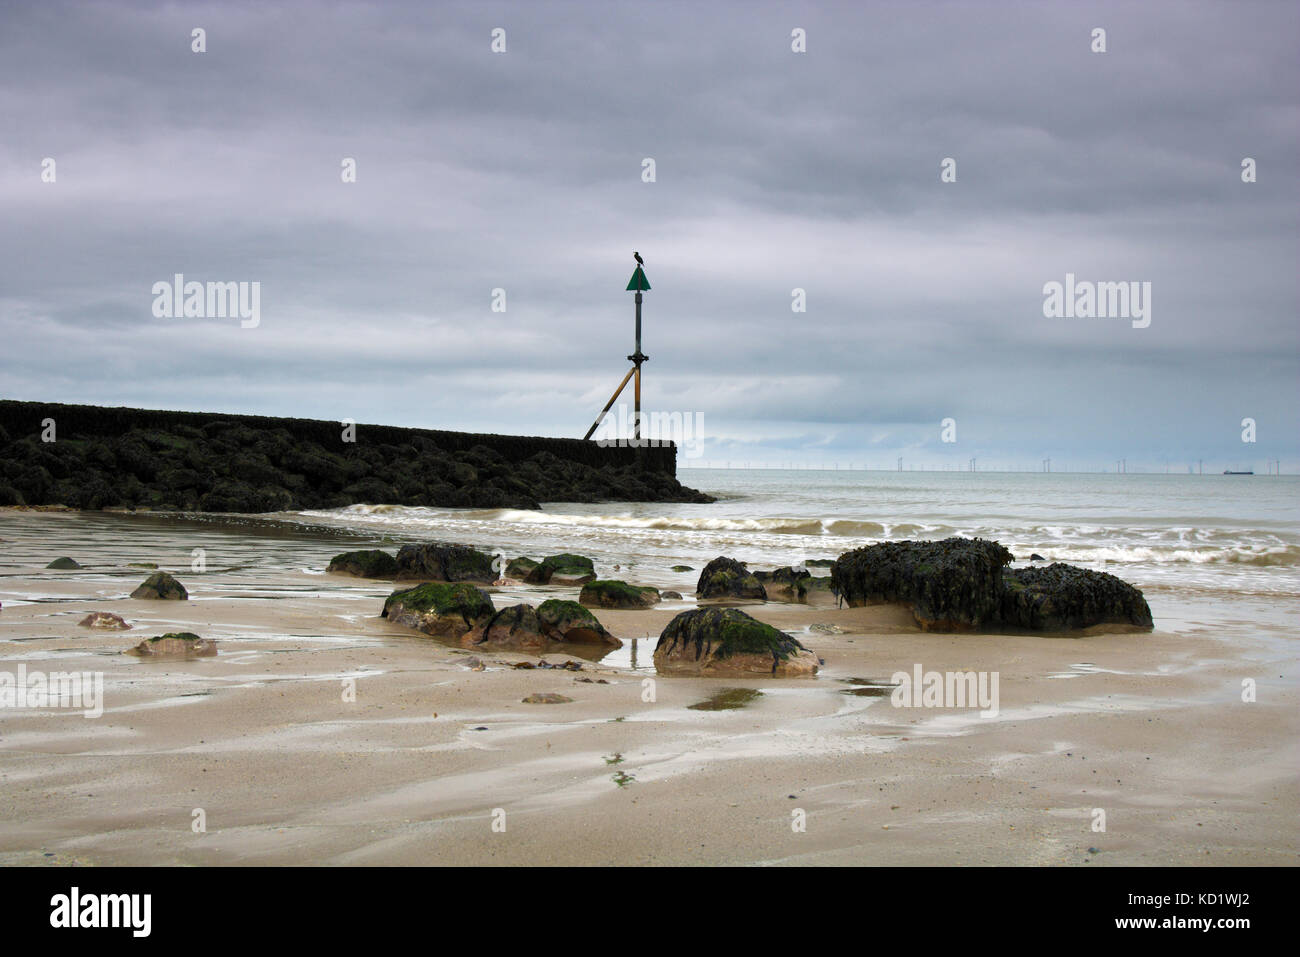 View of a tide breaker looking out across the irish sea. - Stock Image